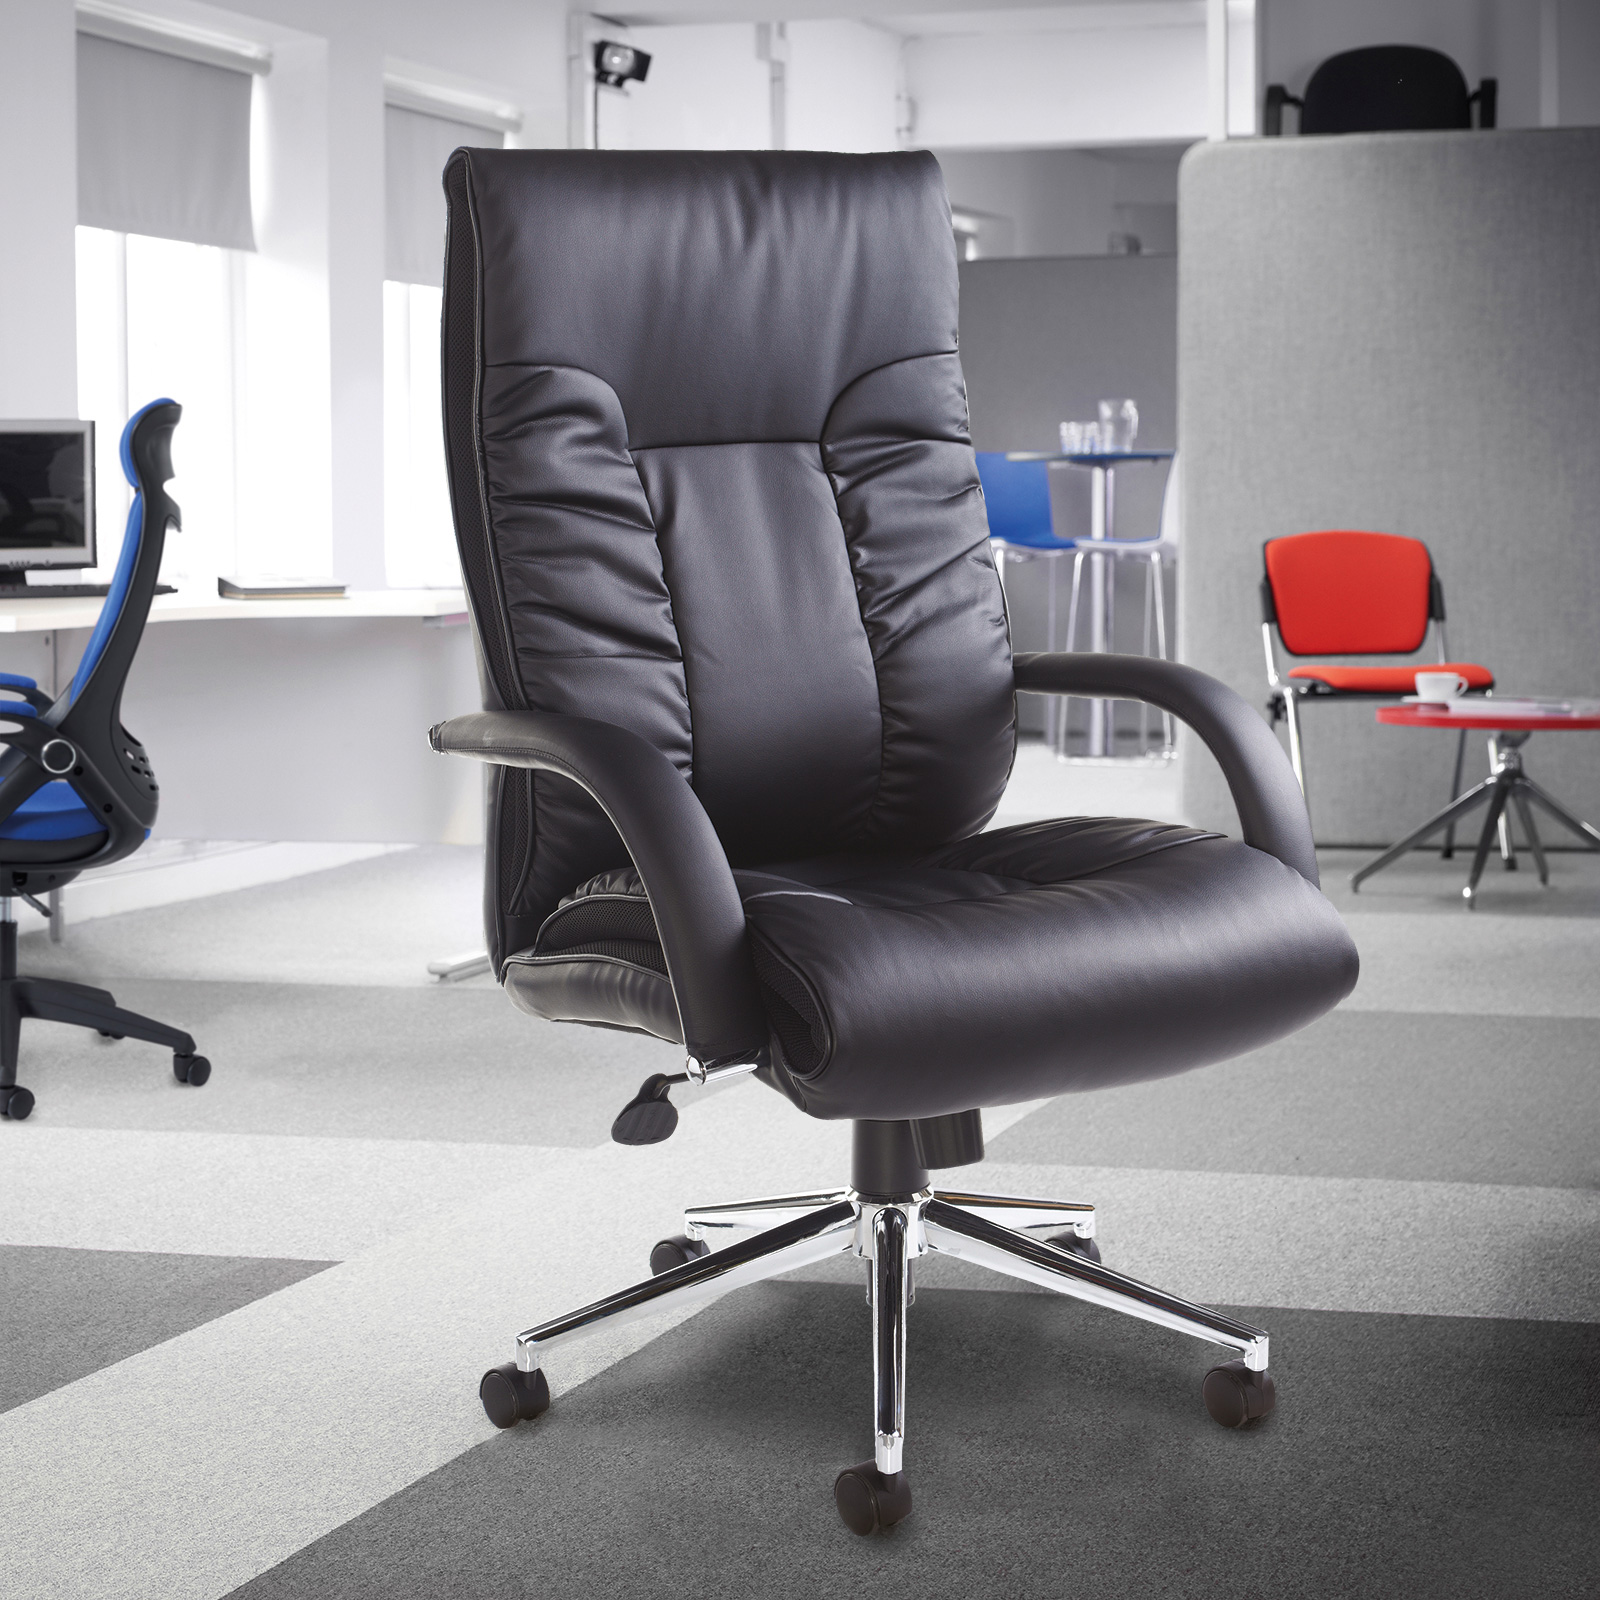 Chairs Derby high back executive chair - black faux leather